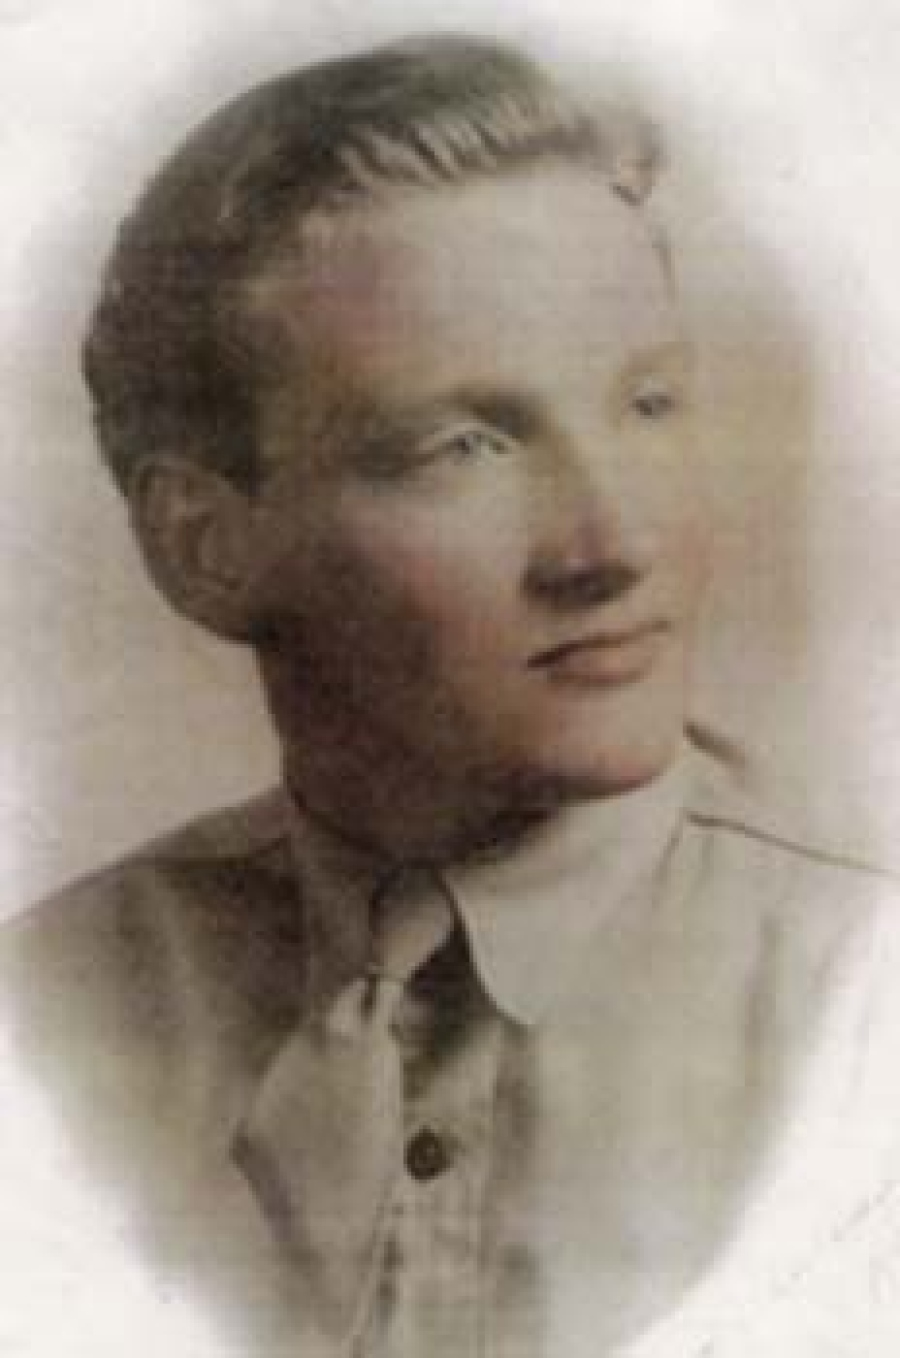 Sgt. Ralph J. Neal - Ball Turret Gunner Neal flew on the Lonesome Lady mission to bomb the Haruna in the place of Replacement Crew 42B crew member Frank Baker the day it was shot down.